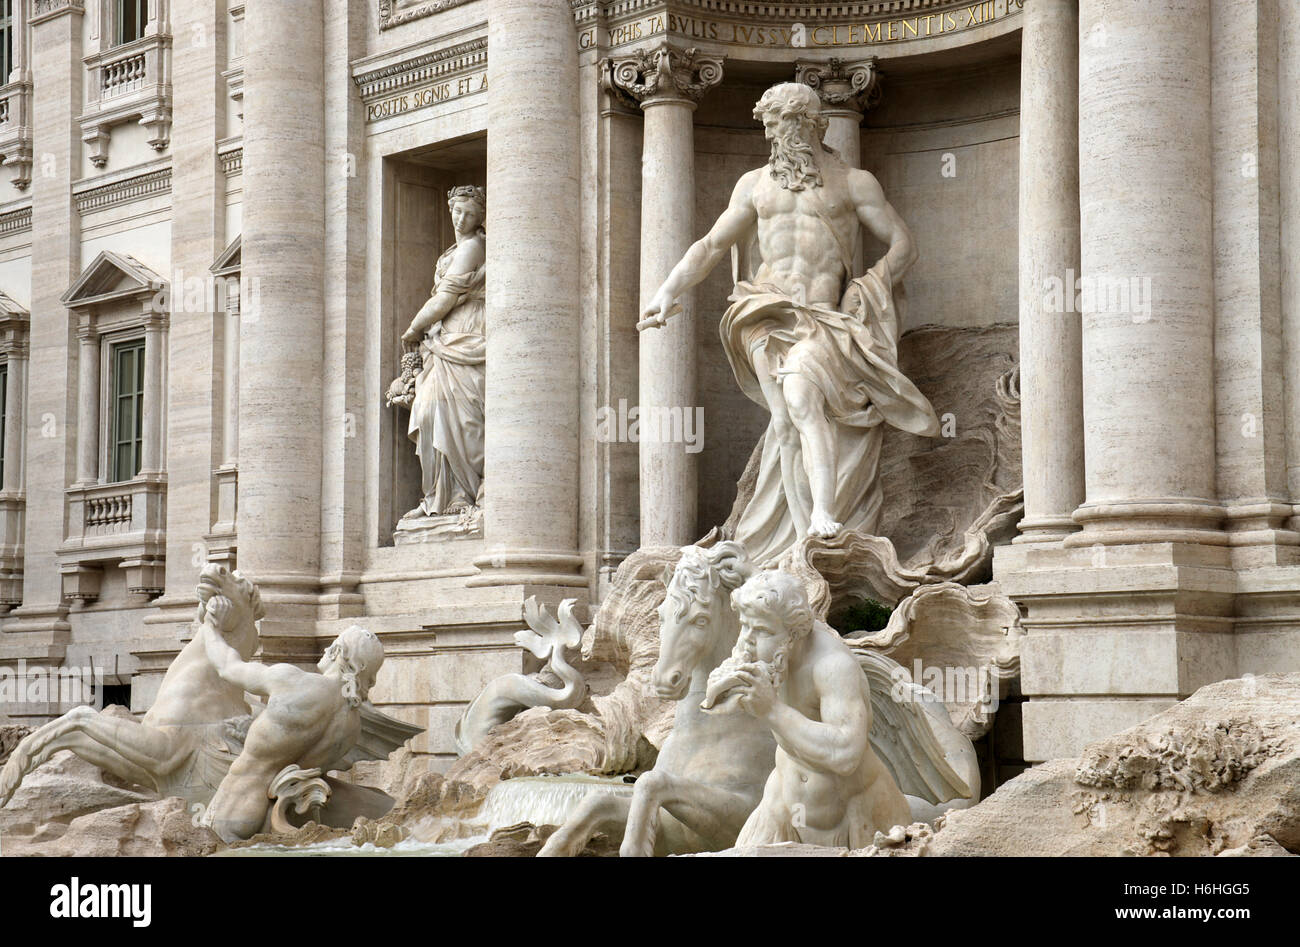 Detail of the world famous Trevi Fountain Rome Italy - Stock Image